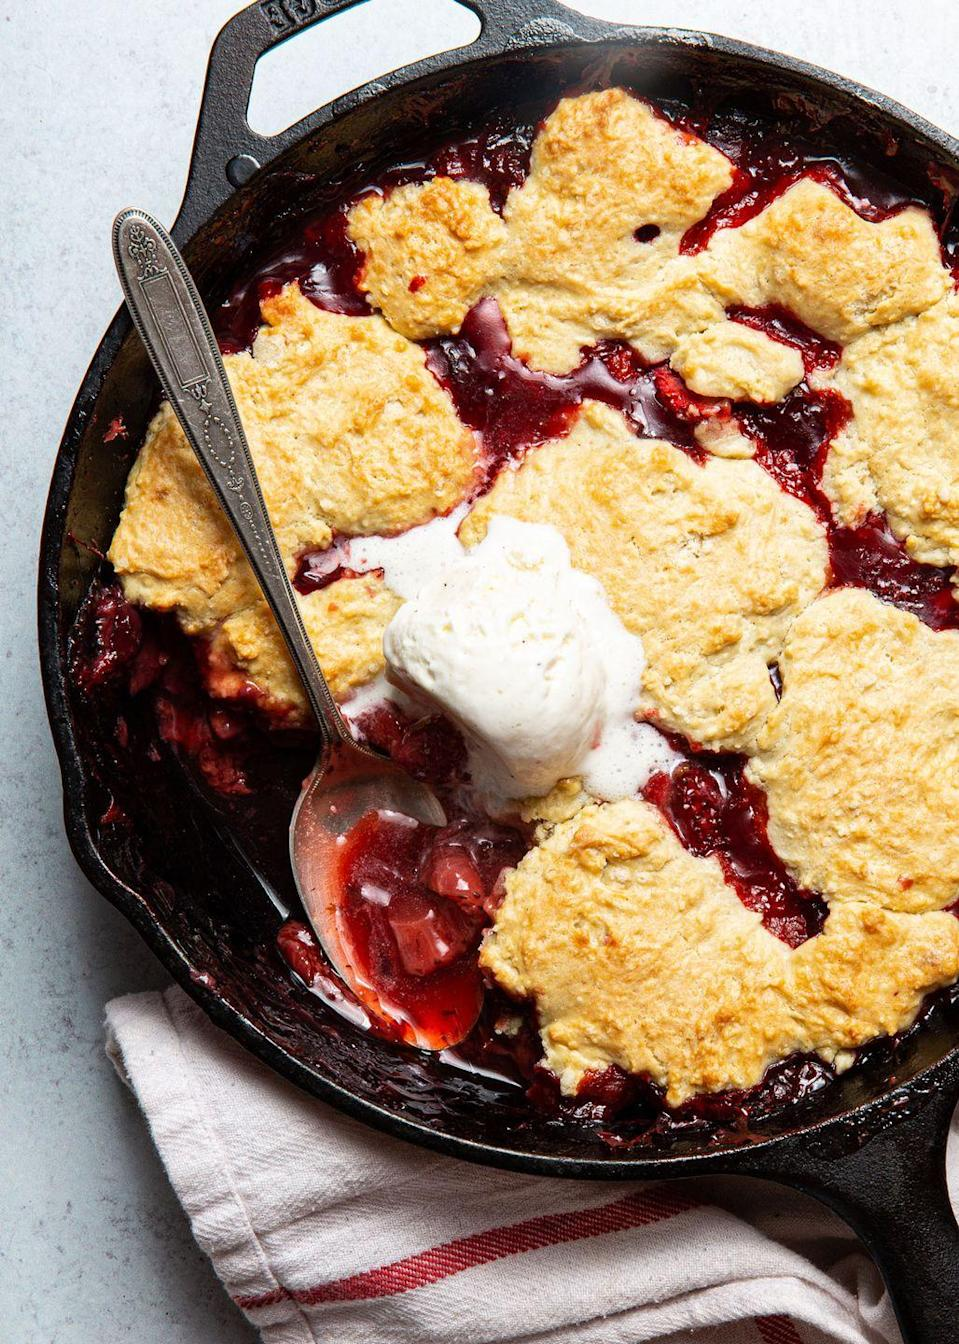 """<p>Not too sweet, and just a little saucy.</p><p>Get the recipe from <a href=""""https://www.delish.com/cooking/recipe-ideas/a32602137/strawberry-cobbler-recipe/"""" rel=""""nofollow noopener"""" target=""""_blank"""" data-ylk=""""slk:Delish"""" class=""""link rapid-noclick-resp"""">Delish</a>.</p>"""